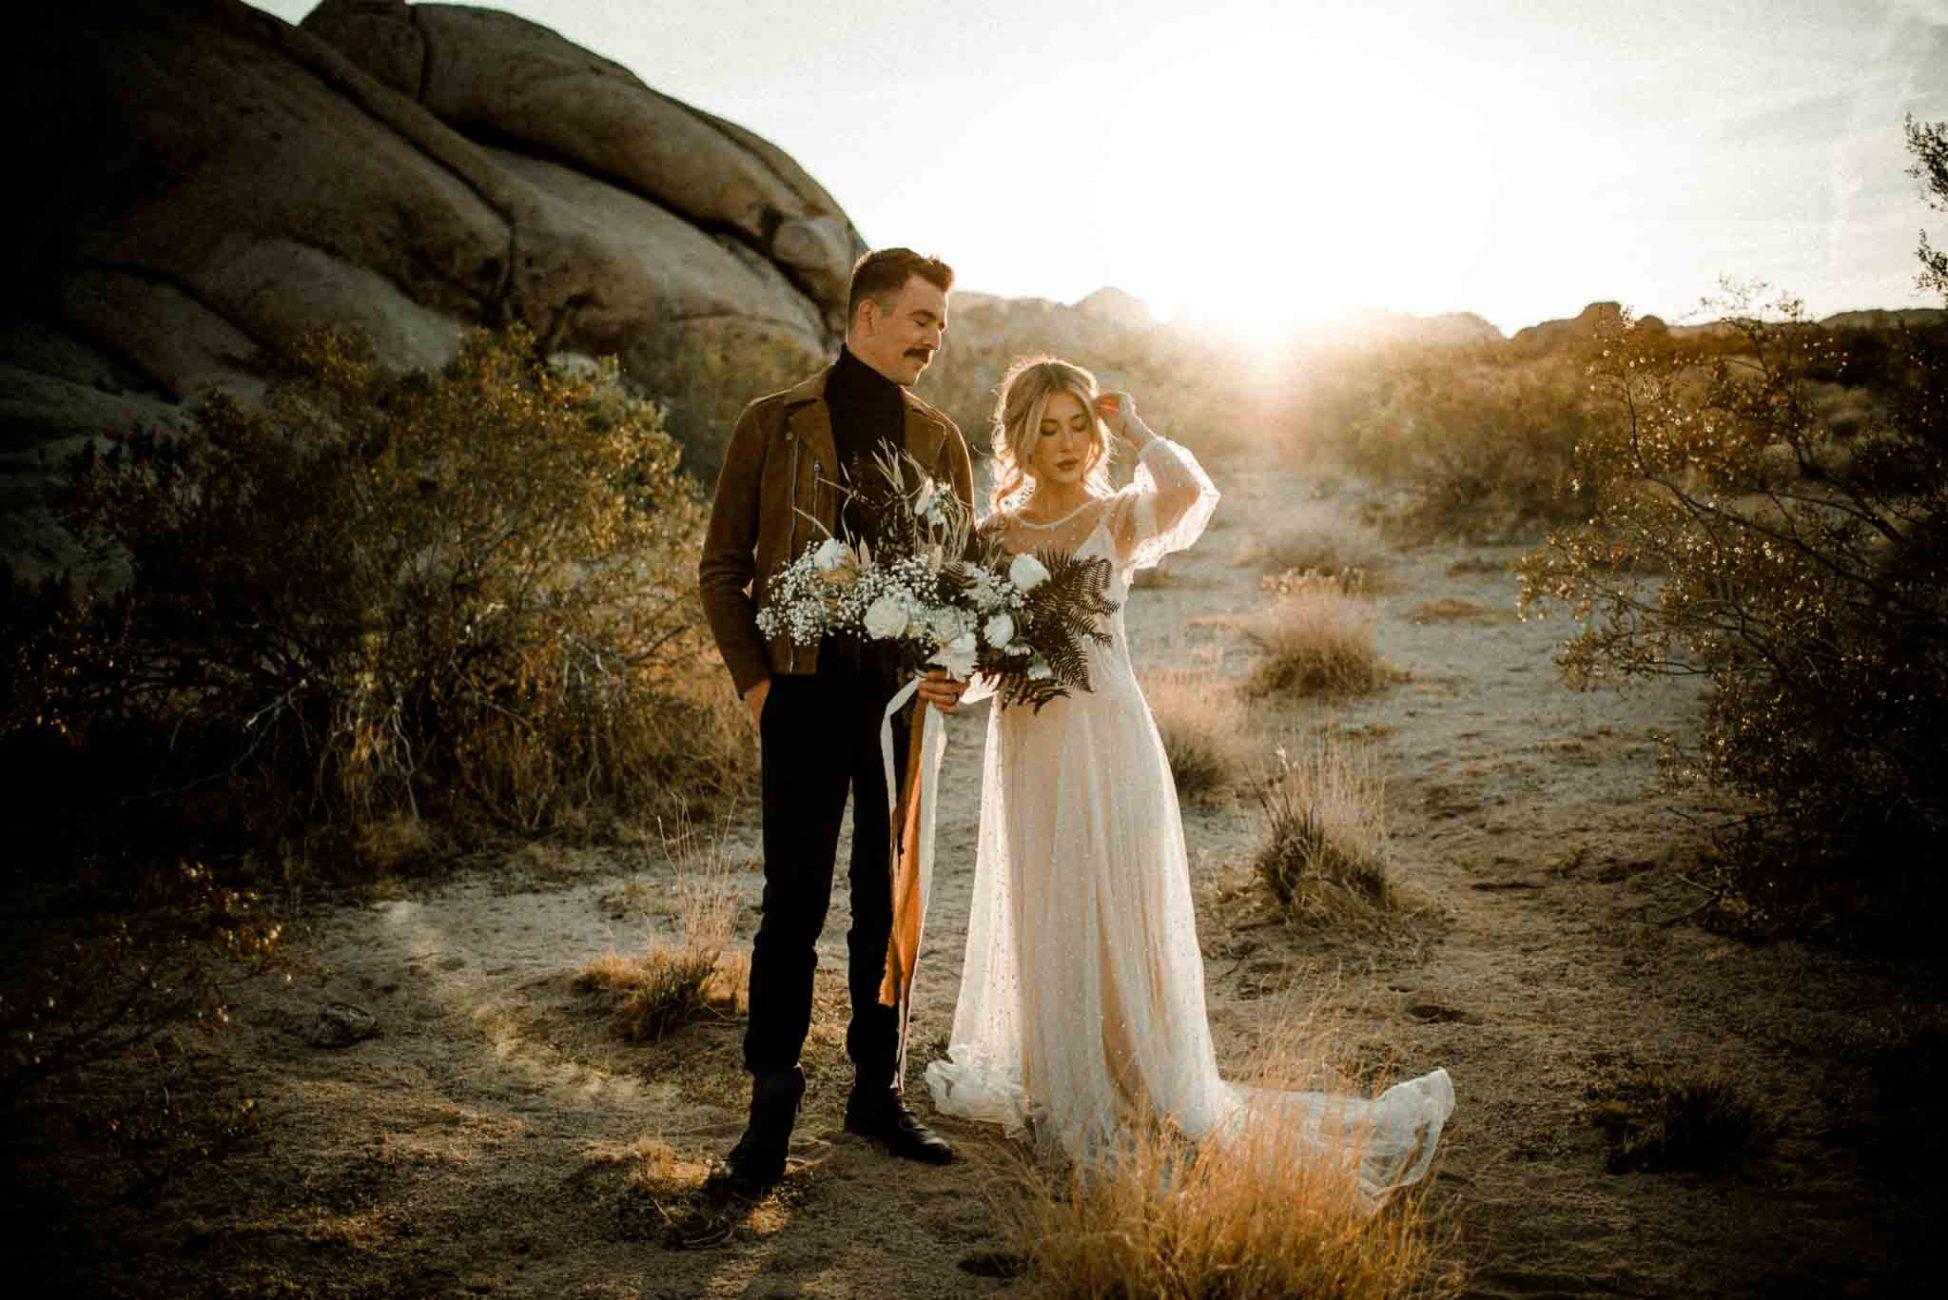 Intimate bohemian Joshua Tree National Park Elopement styled shoot. Filled with romantic neutrals and exquisite details. By Oregon Wedding Photographer Dionne Kraus